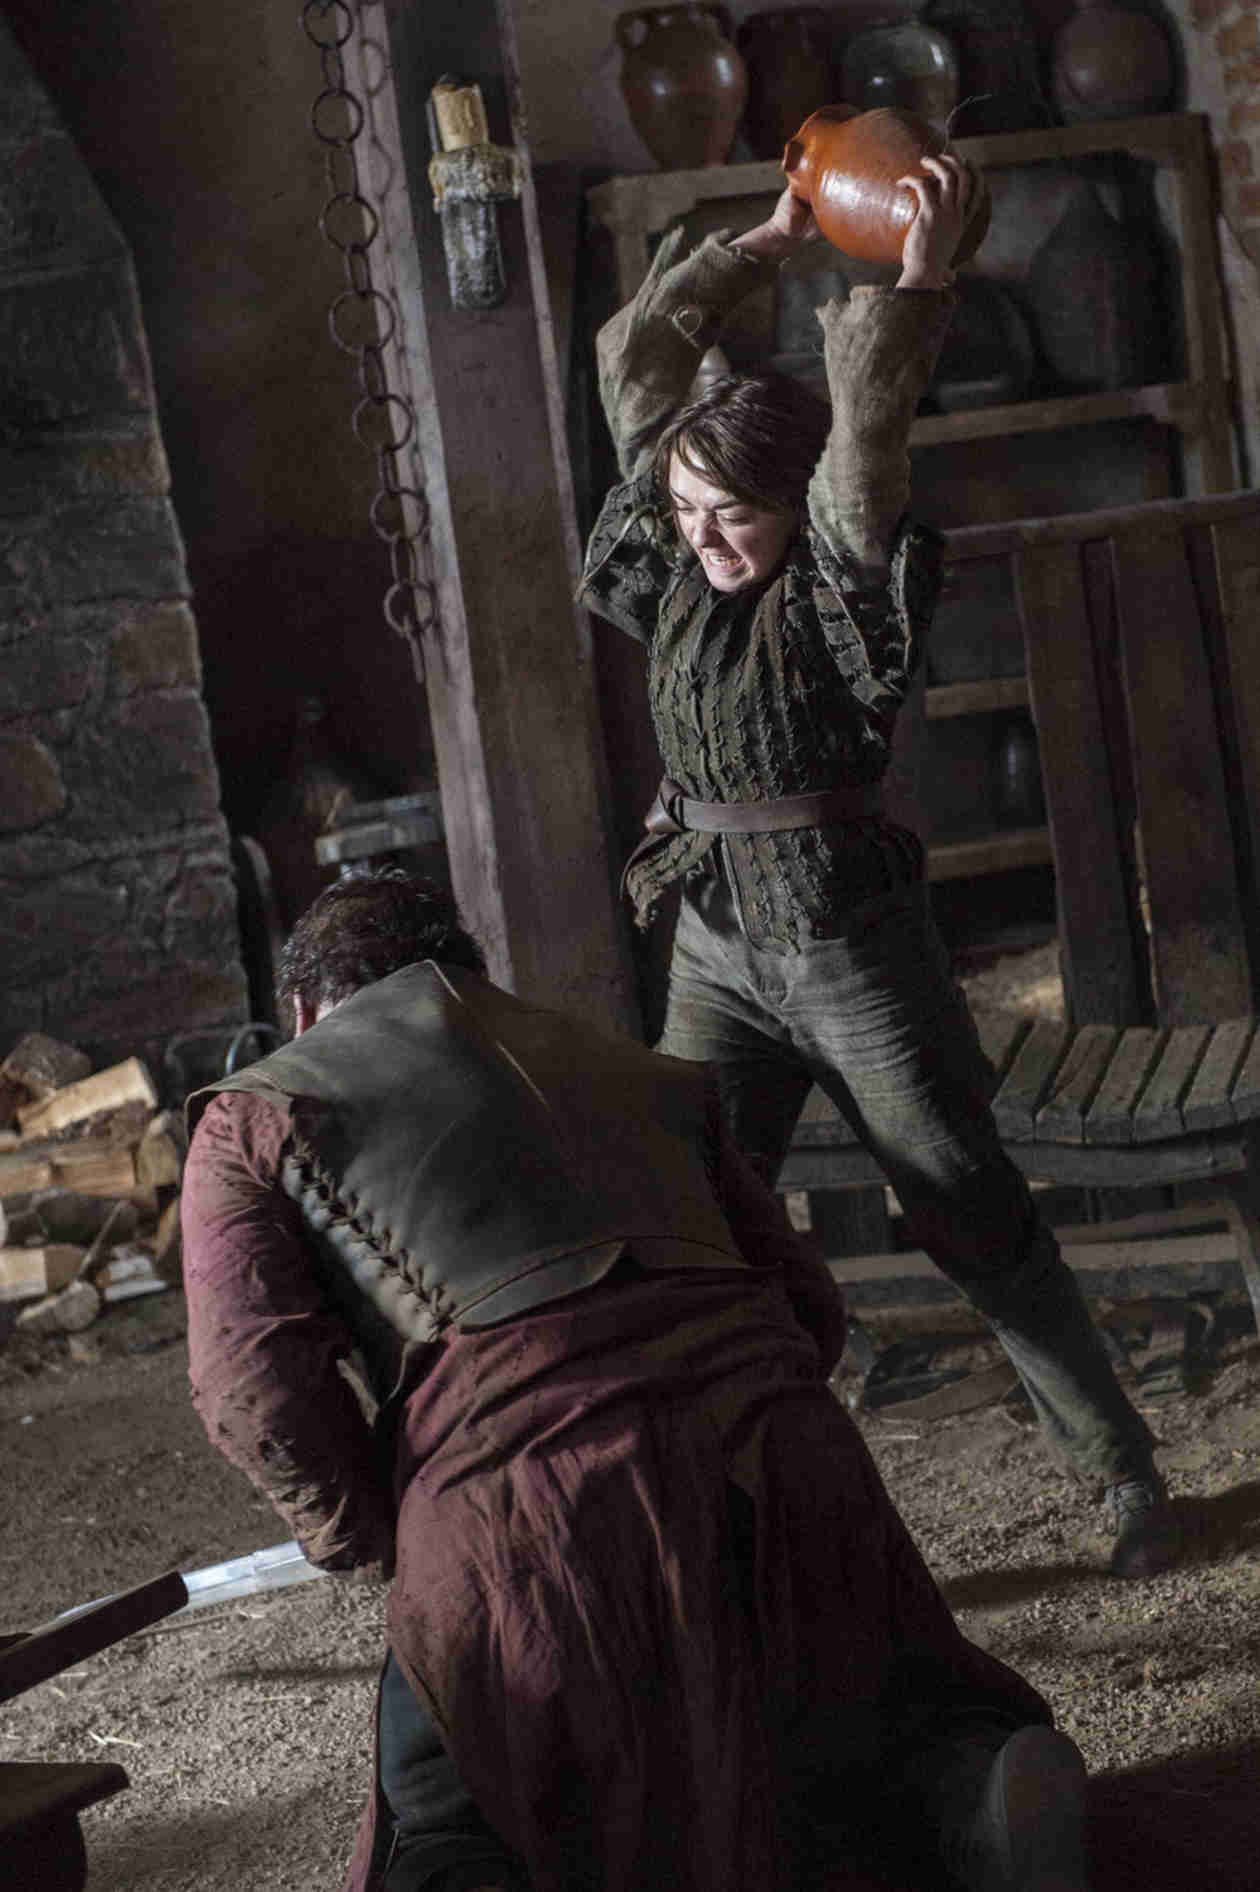 Game of Thrones Season 4 Finale Speculation: Will Arya Die? (Spoiler Free)